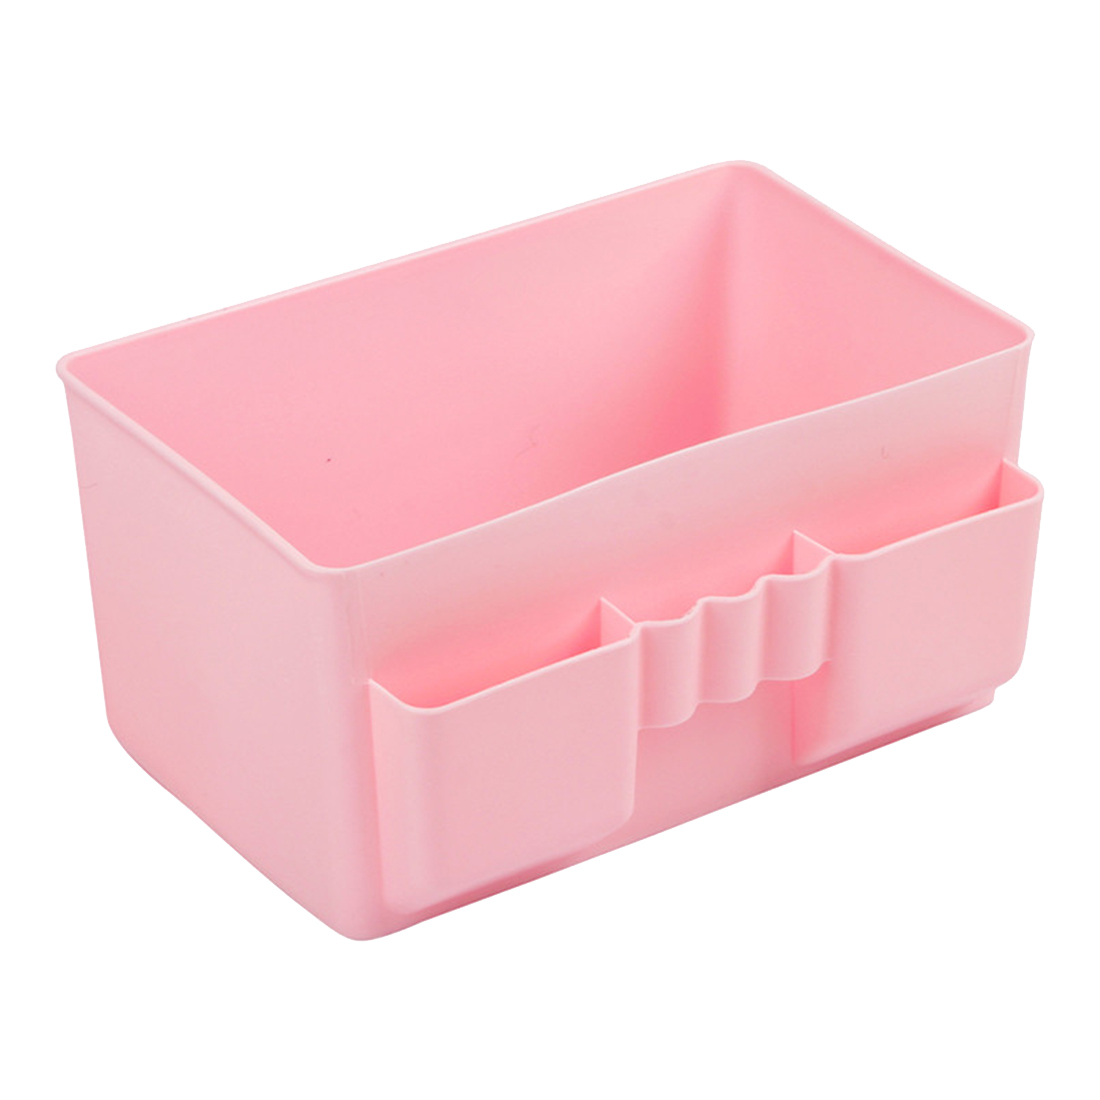 Perfect-Hot Sale Cute Plastic Office Desktop Storage Boxes Makeup Organizer Storage Box #69829